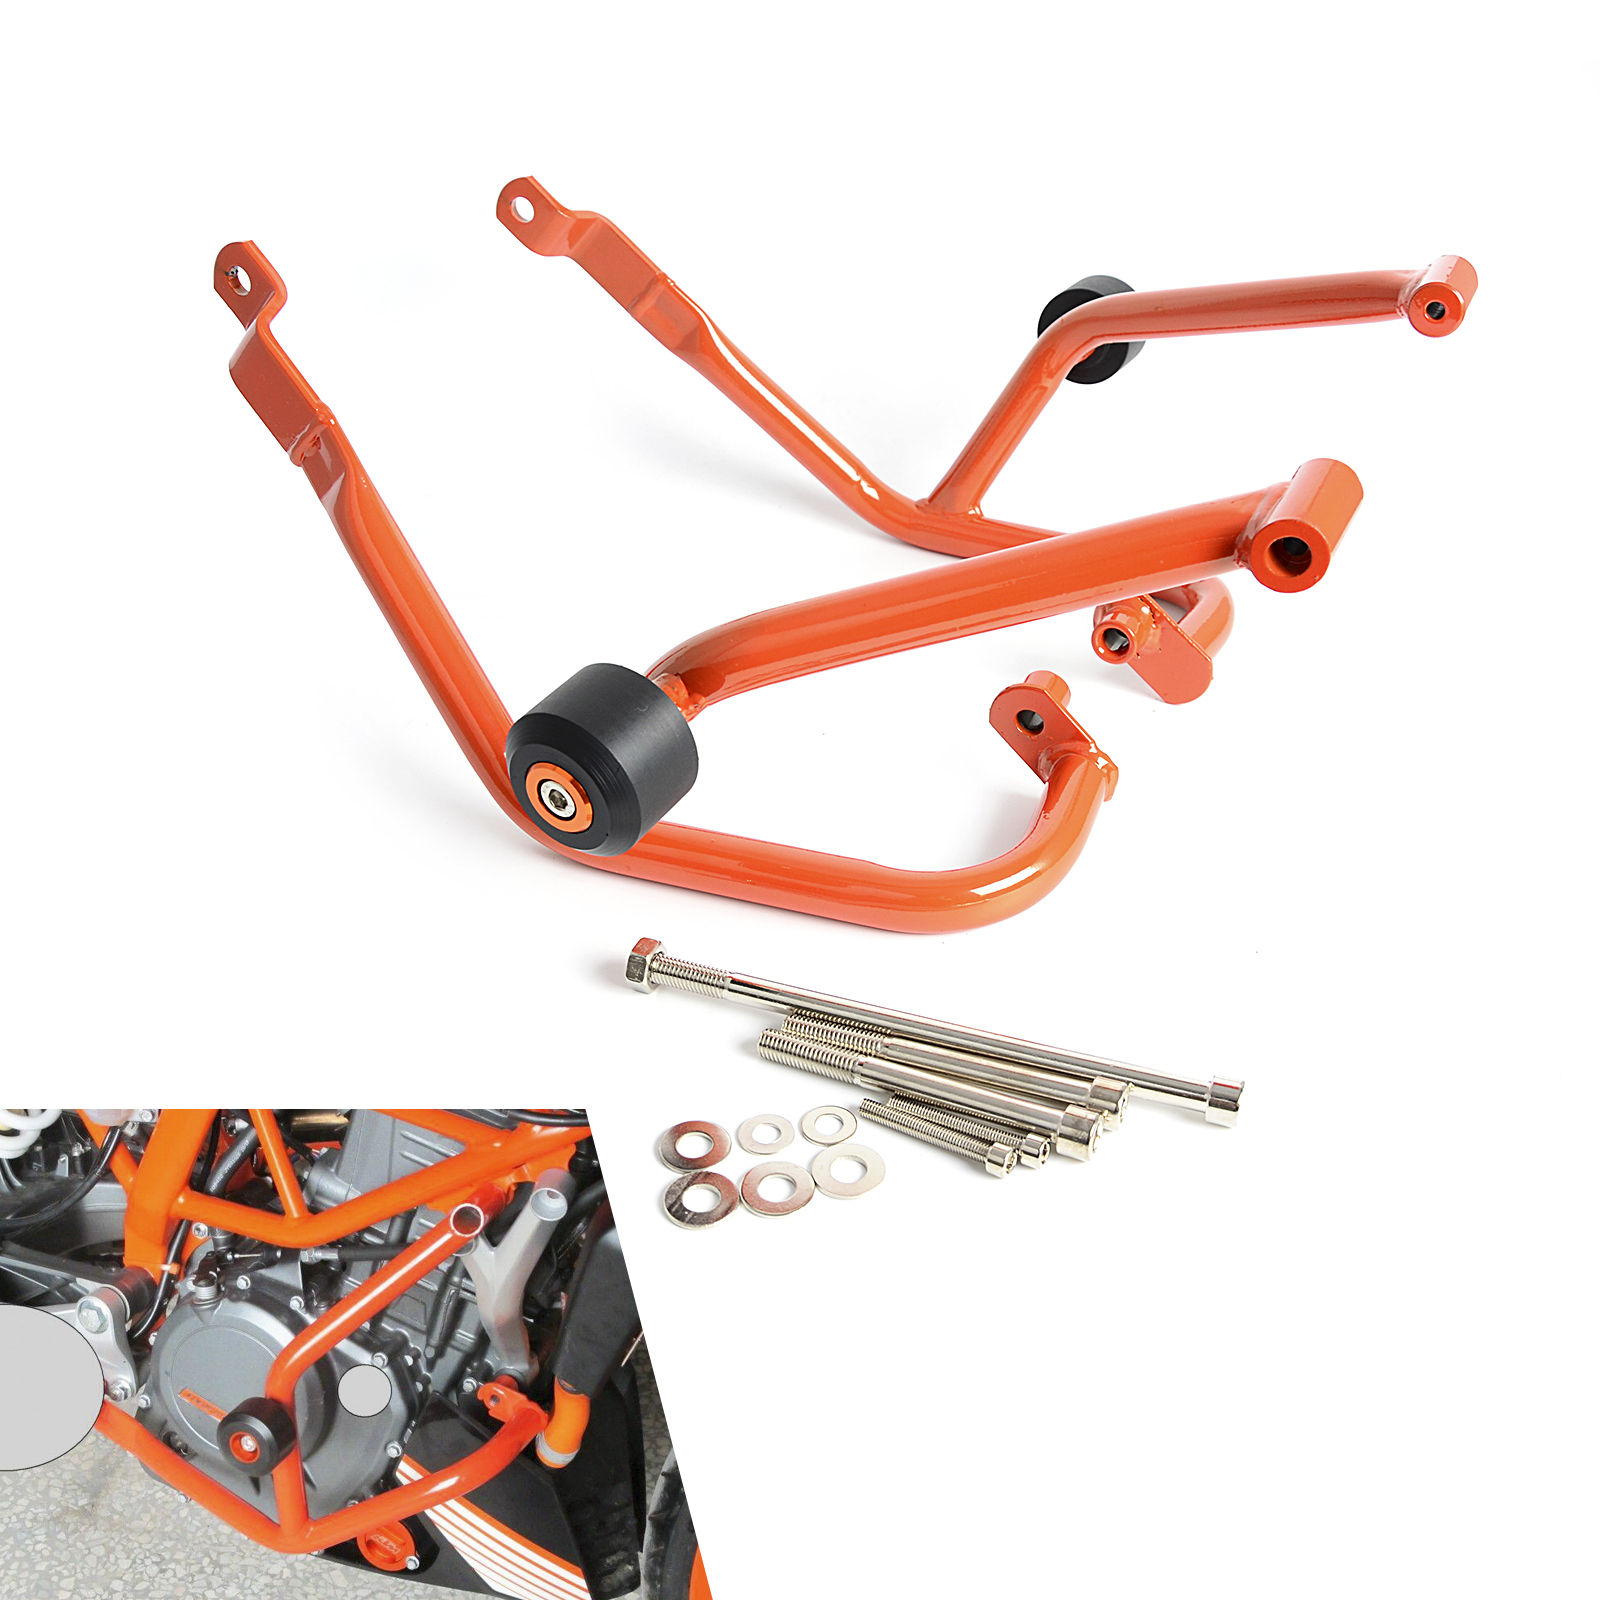 Motorcycle Engine Guard Crash Bars Frame Protector Bumper For KTM 125 200 Duke 2011 2012 2013 2014 2015 NEW набор кухонных принадлежностей super kristal sk 3688